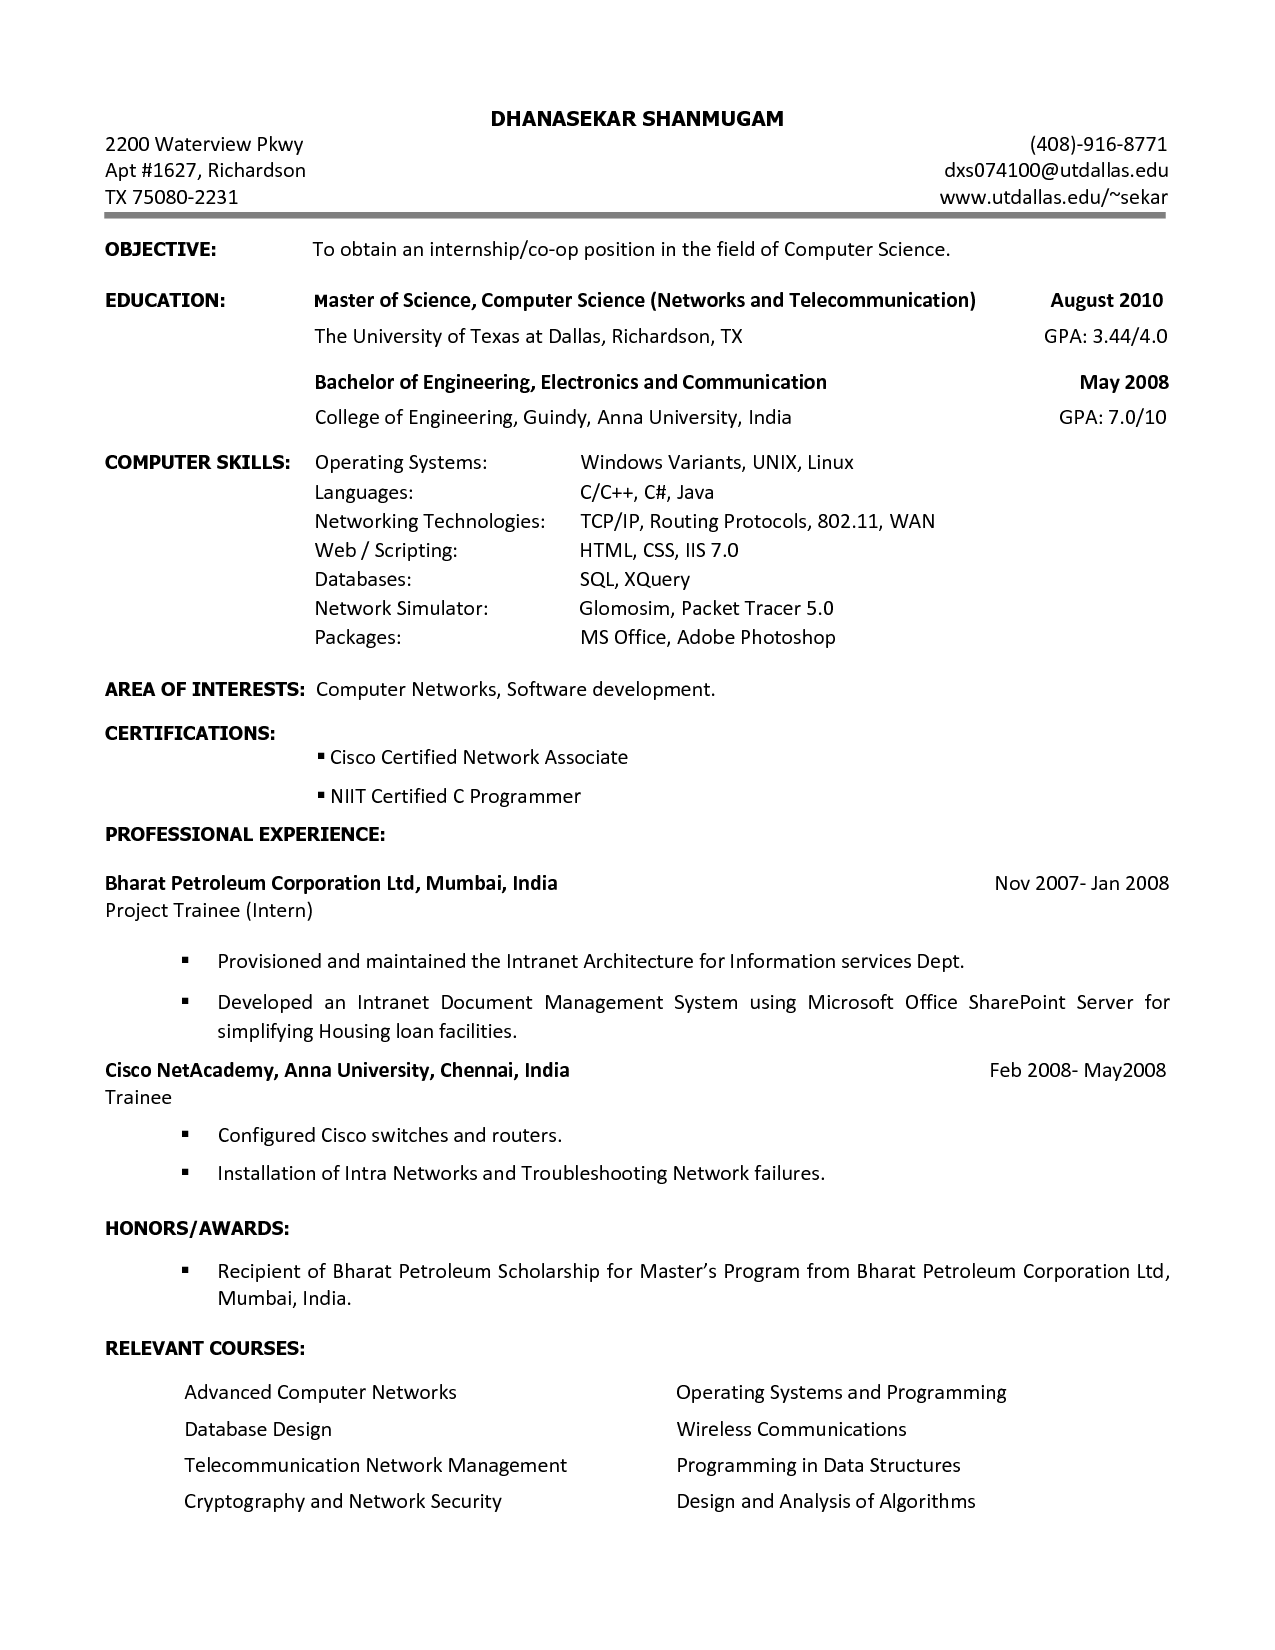 Resume Builder Resume Builder Free Download Free Resume Builder - Resume For Science Research